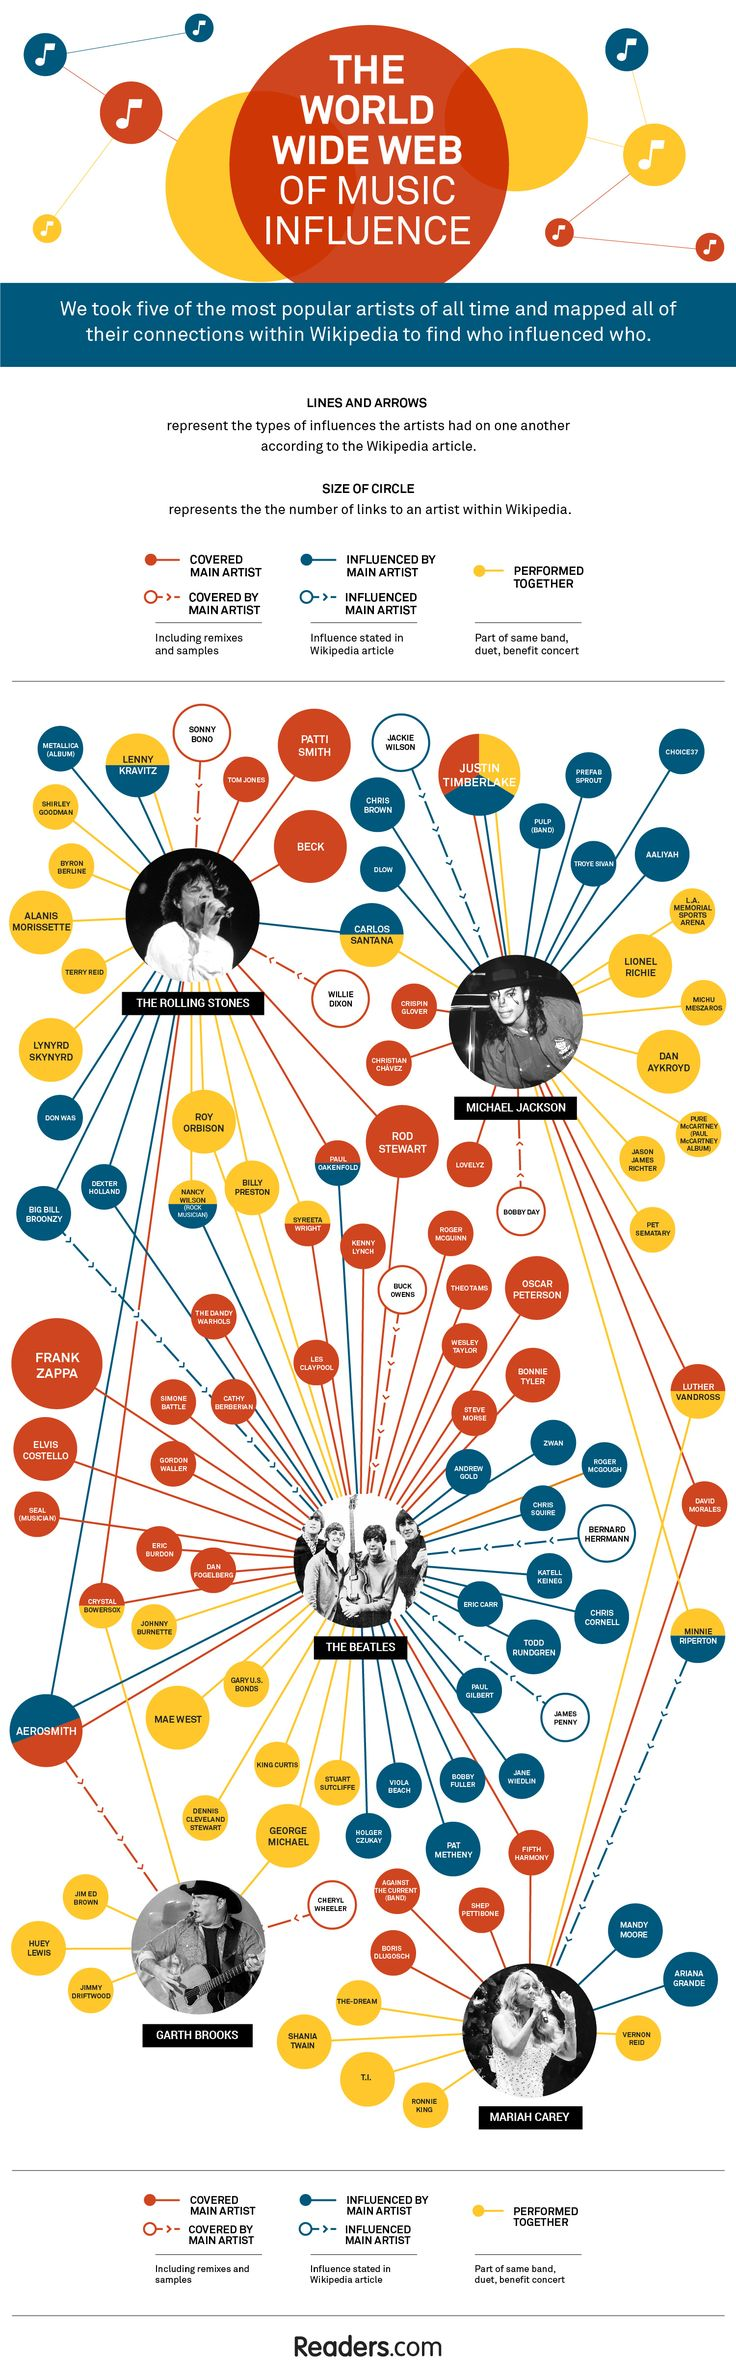 The World Wide Web of Music Influence #Infographic #Music